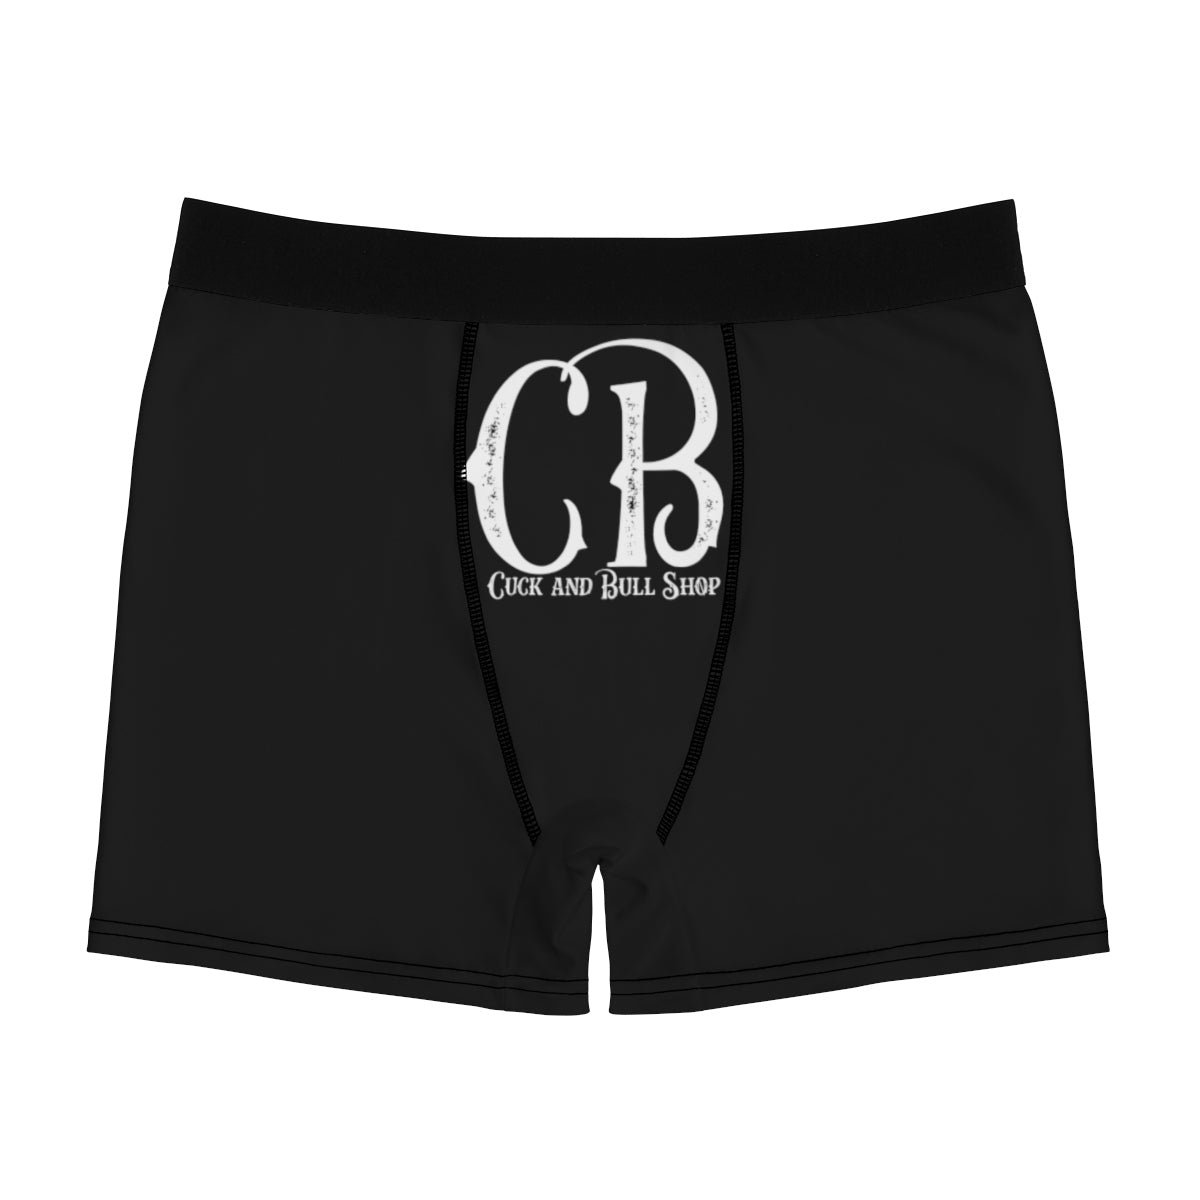 Cuckolding Threesome Symbol Open Relatoinshiop Men's Boxer Briefs